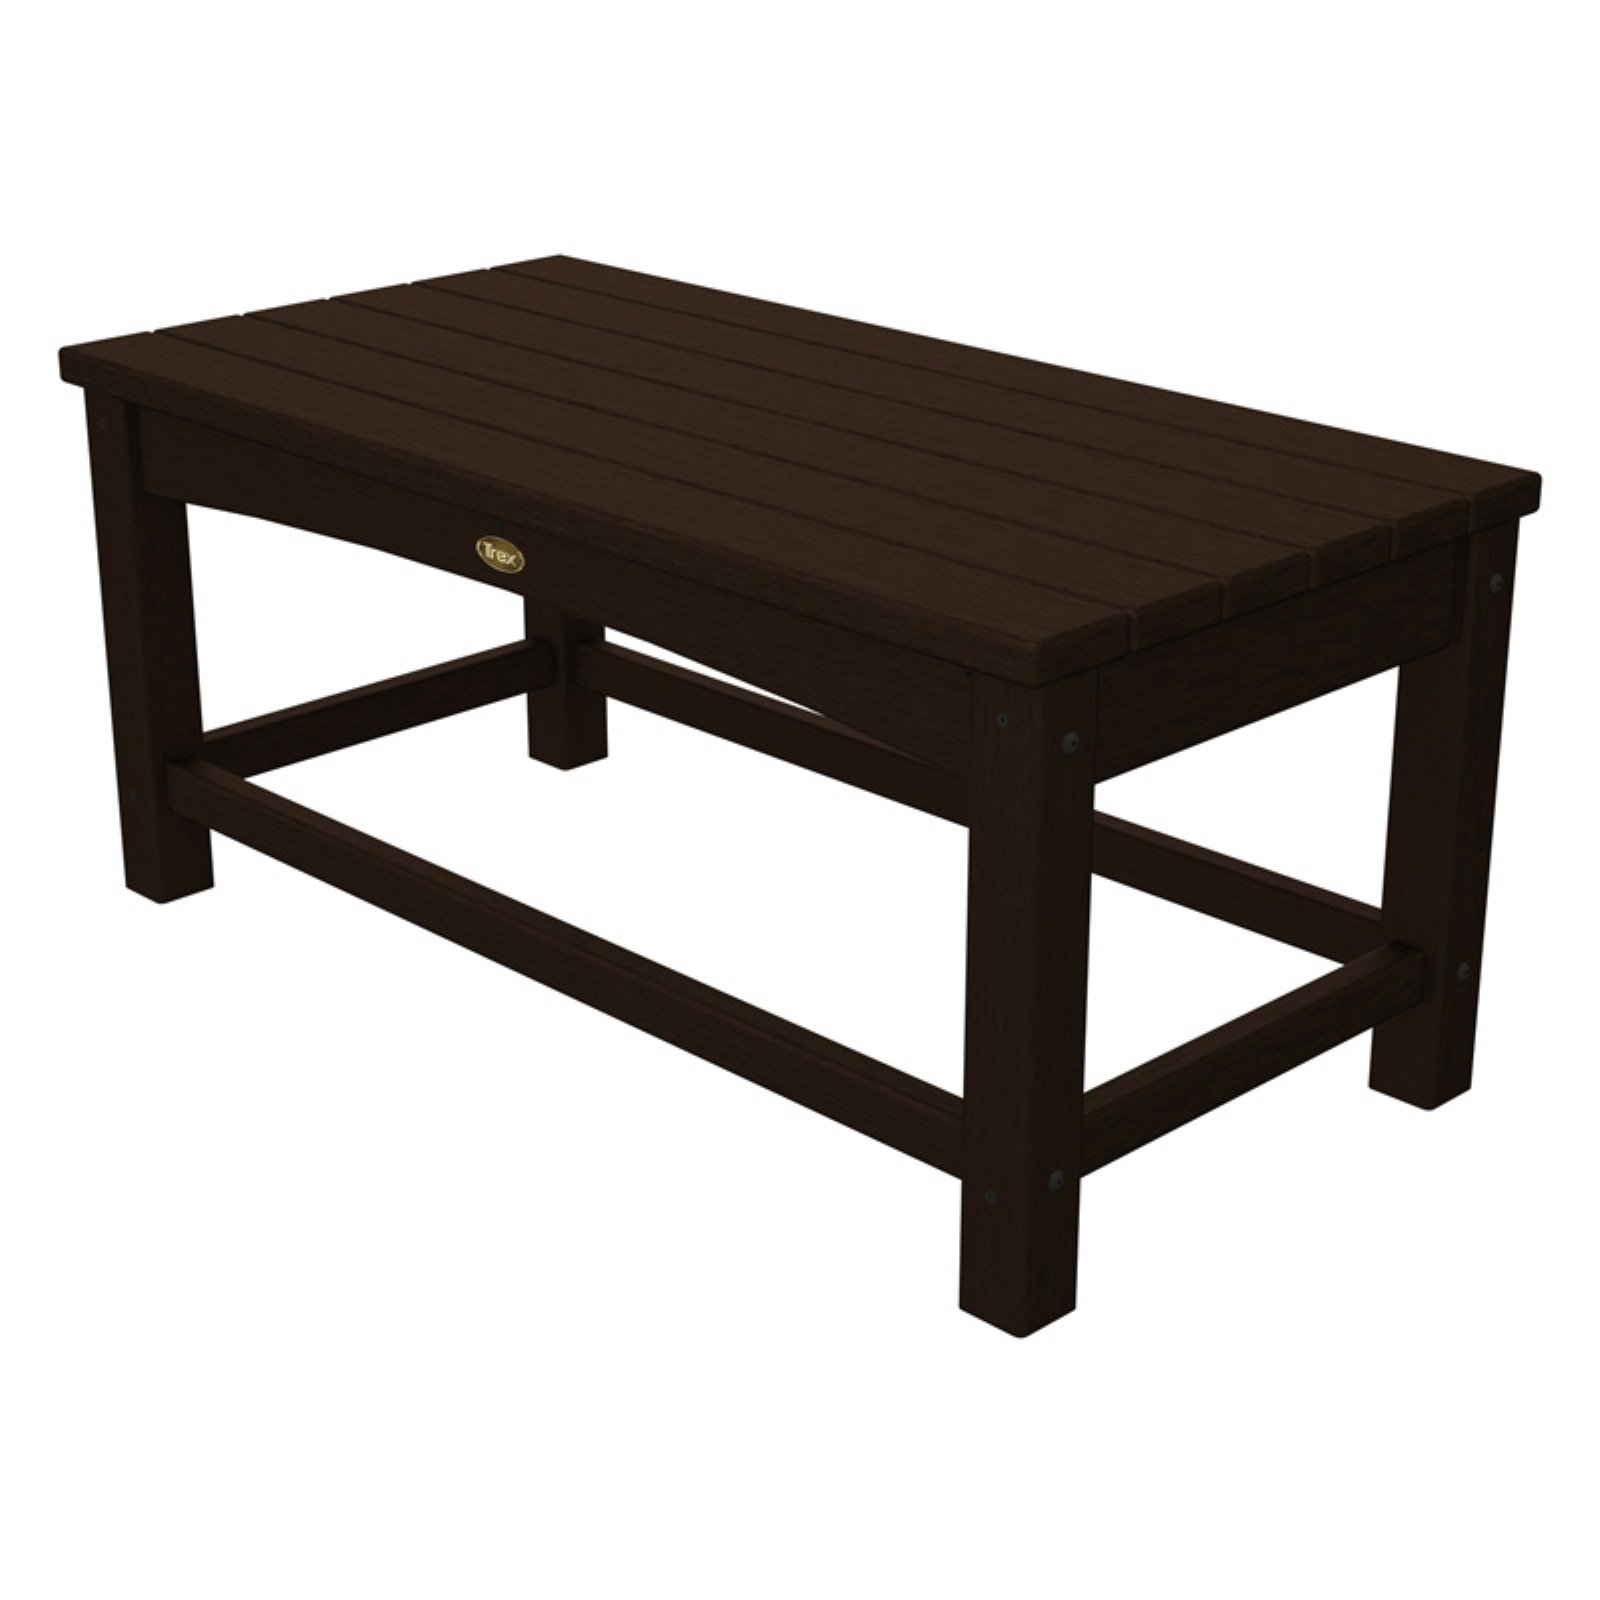 Trex Outdoor Furniture Recycled Plastic Rockport Club Coffee Table